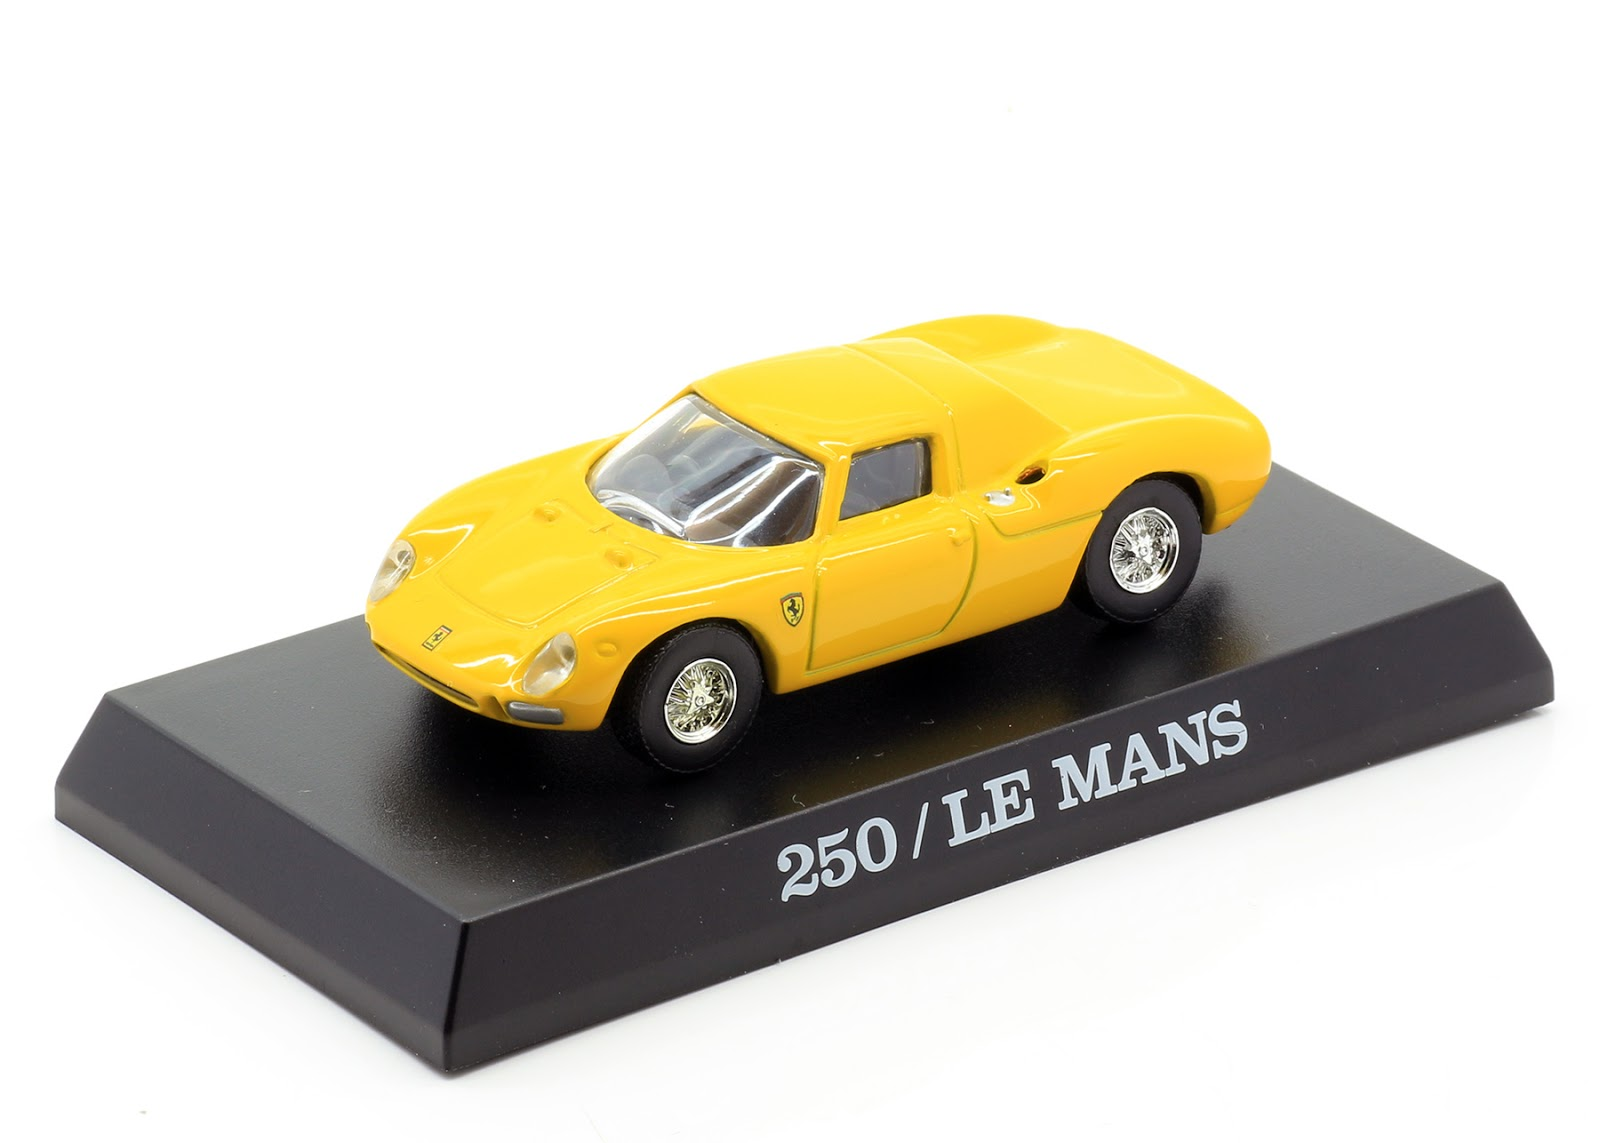 incredible mini garage ferrari 250 le mans 1963 kyosho 1 64. Black Bedroom Furniture Sets. Home Design Ideas